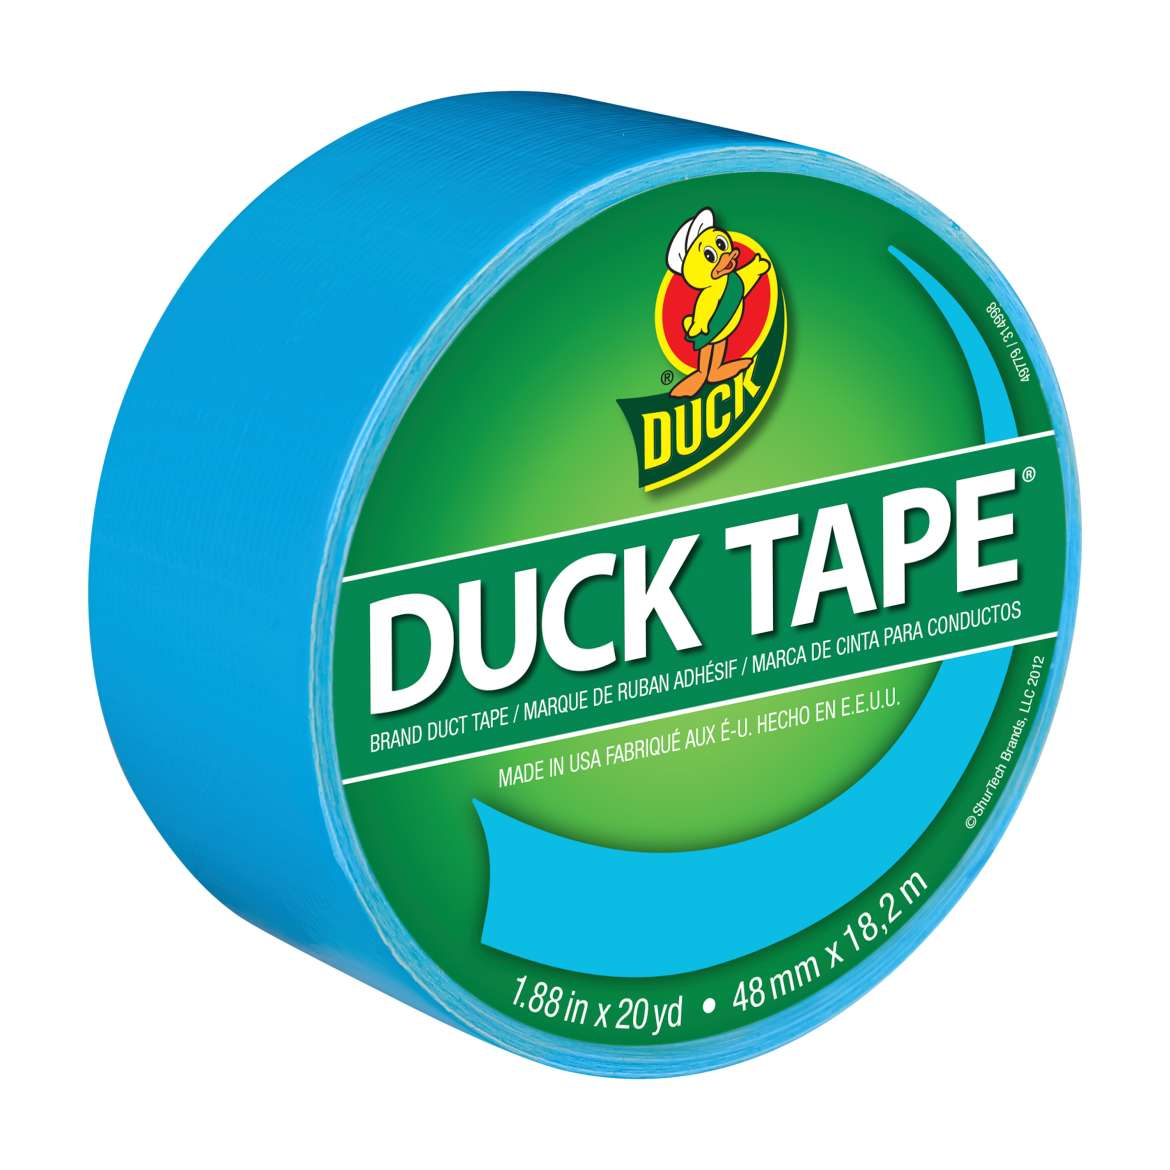 Duck Brand Duct Tape, 1.88 in. x 20 yds., Electric Blue